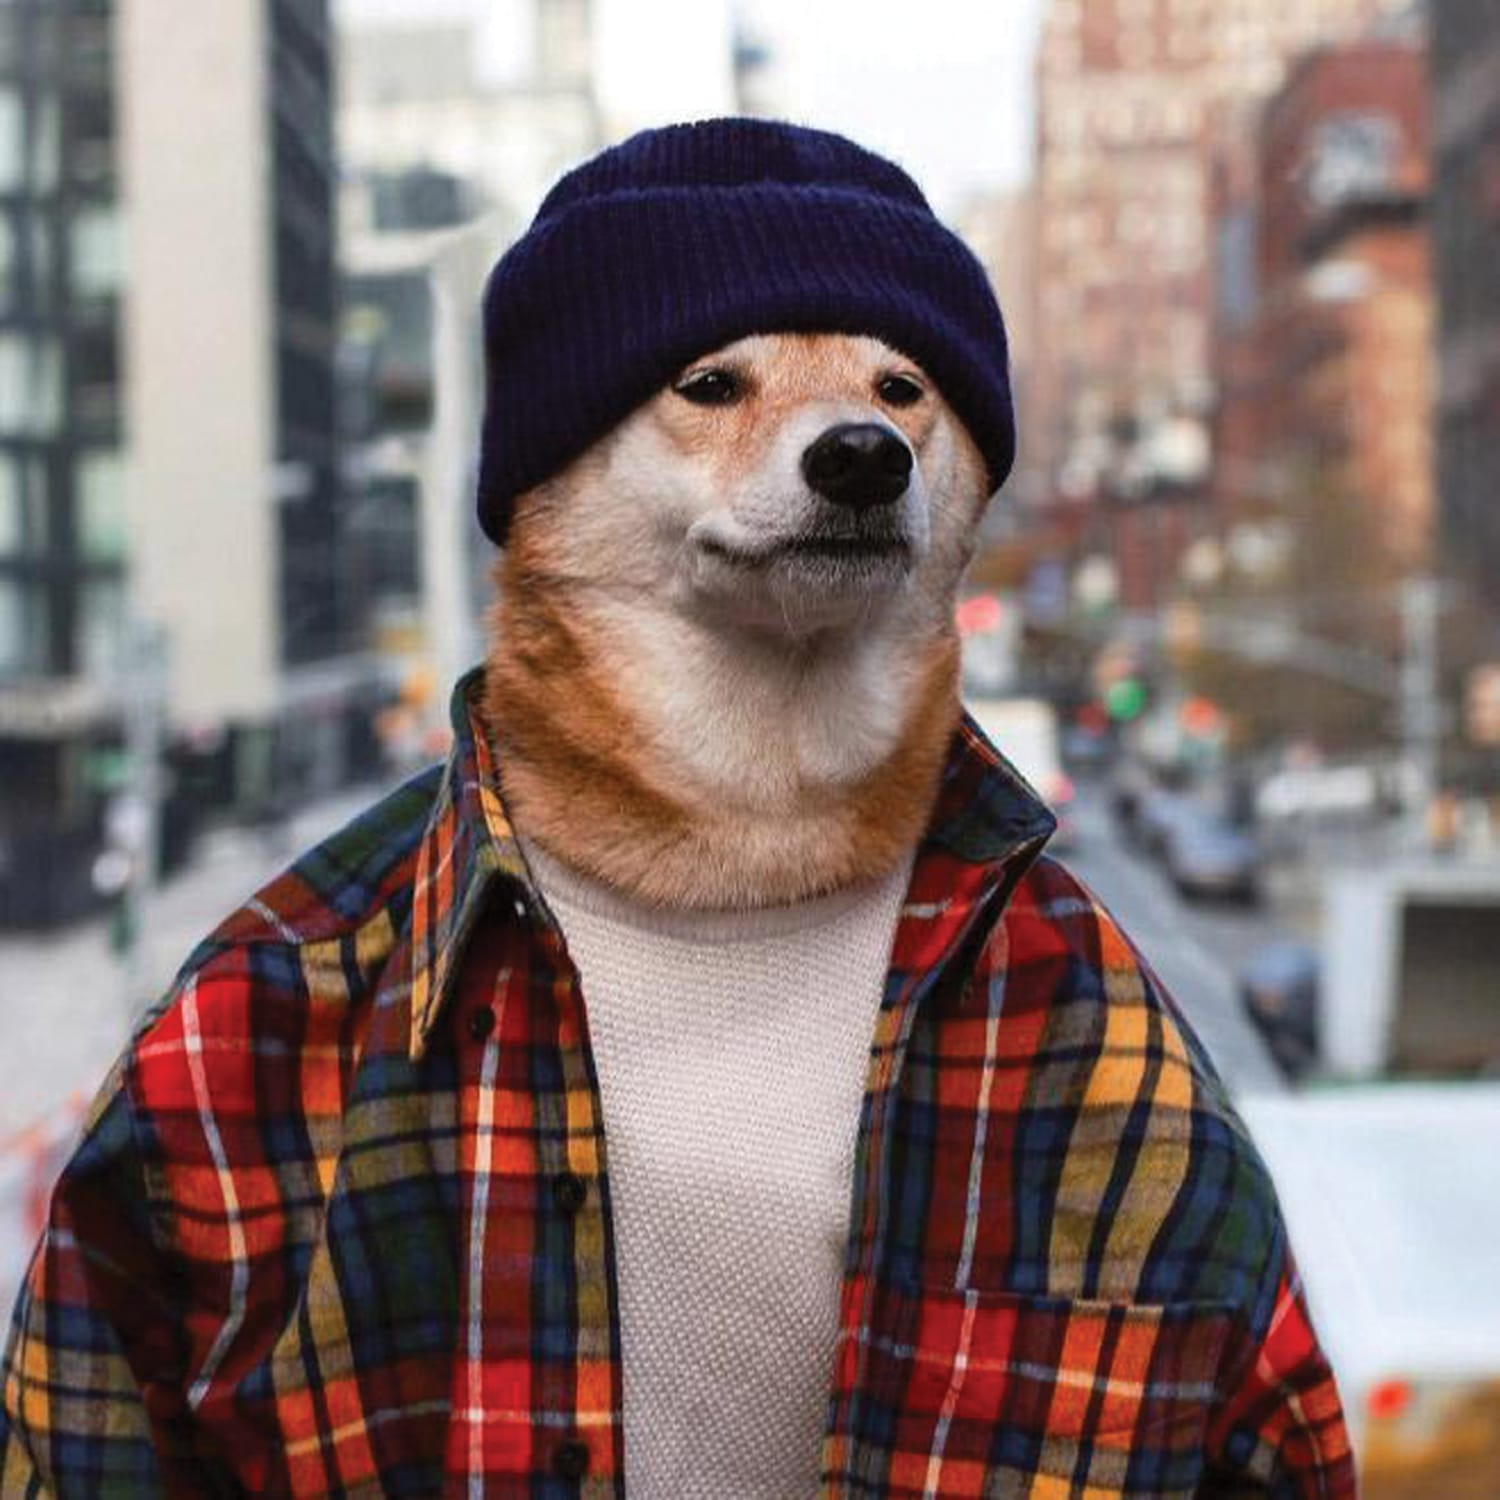 PUP IDOL: Japanese style guru who earns £140k a year and has his own clothing line – is a dog